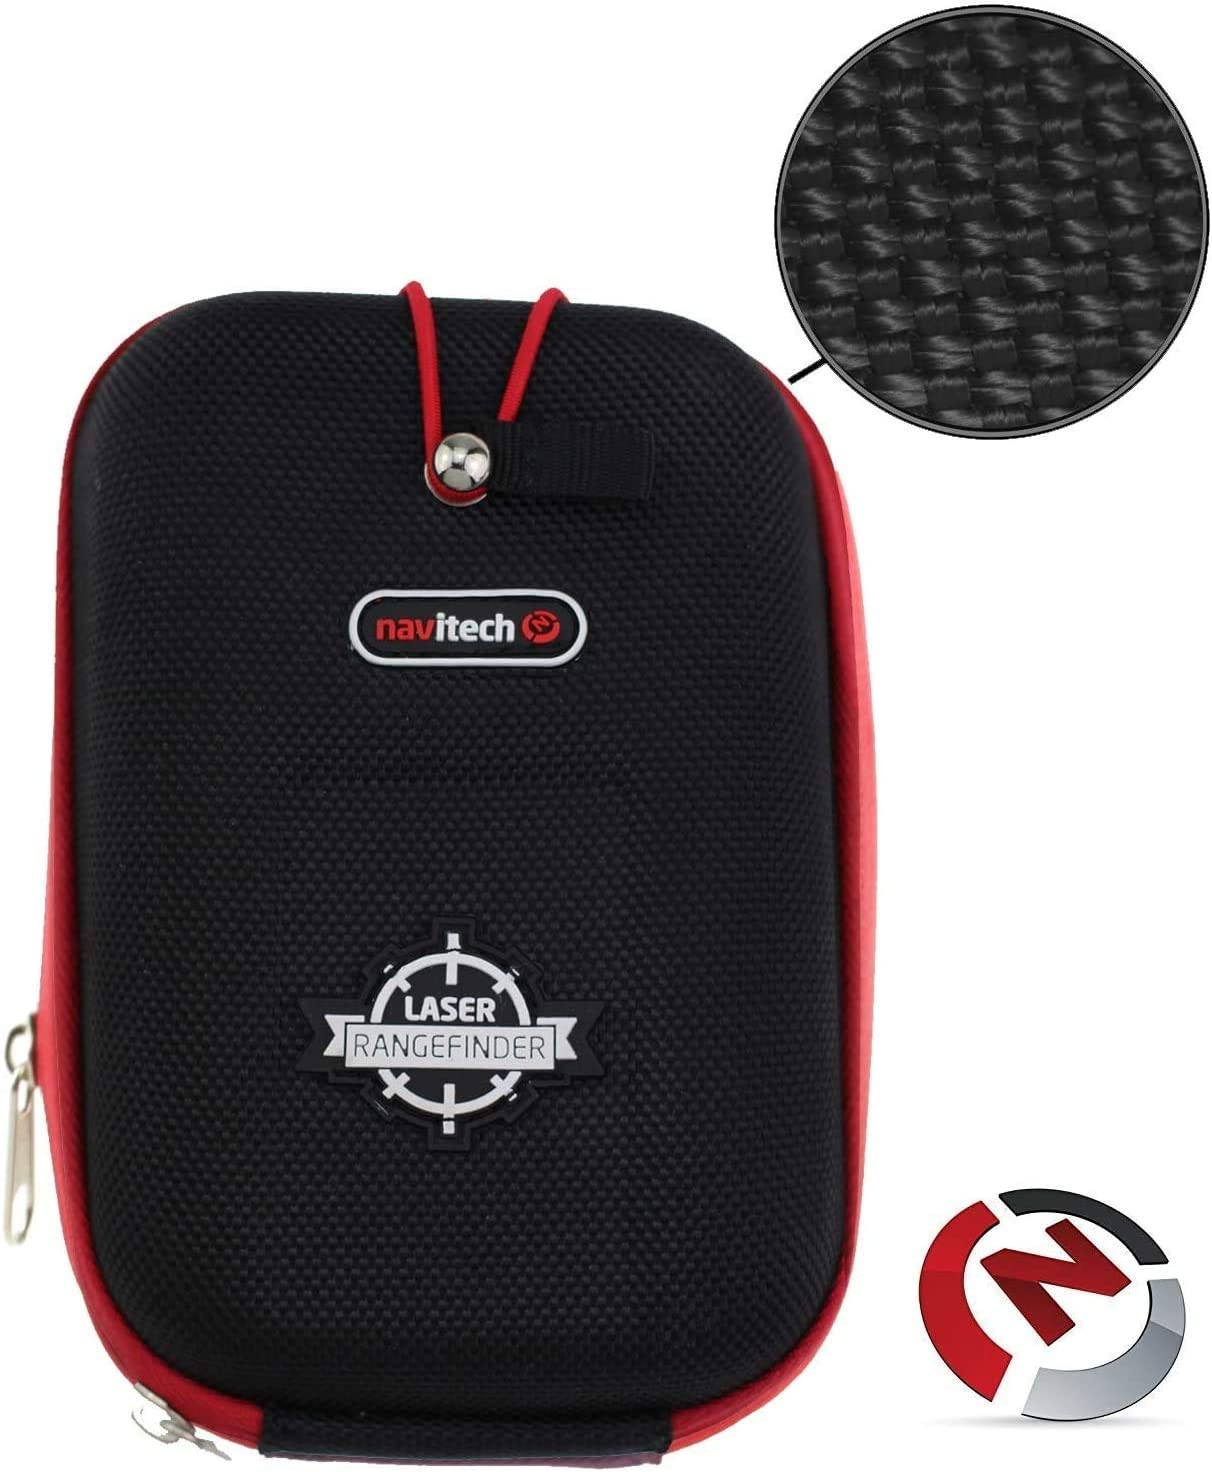 Navitech Black EVA Hard Case/Rangefinder Cover Compatible with The Wgi Innovations/Ba Products XRT Halo XRT Range Finder